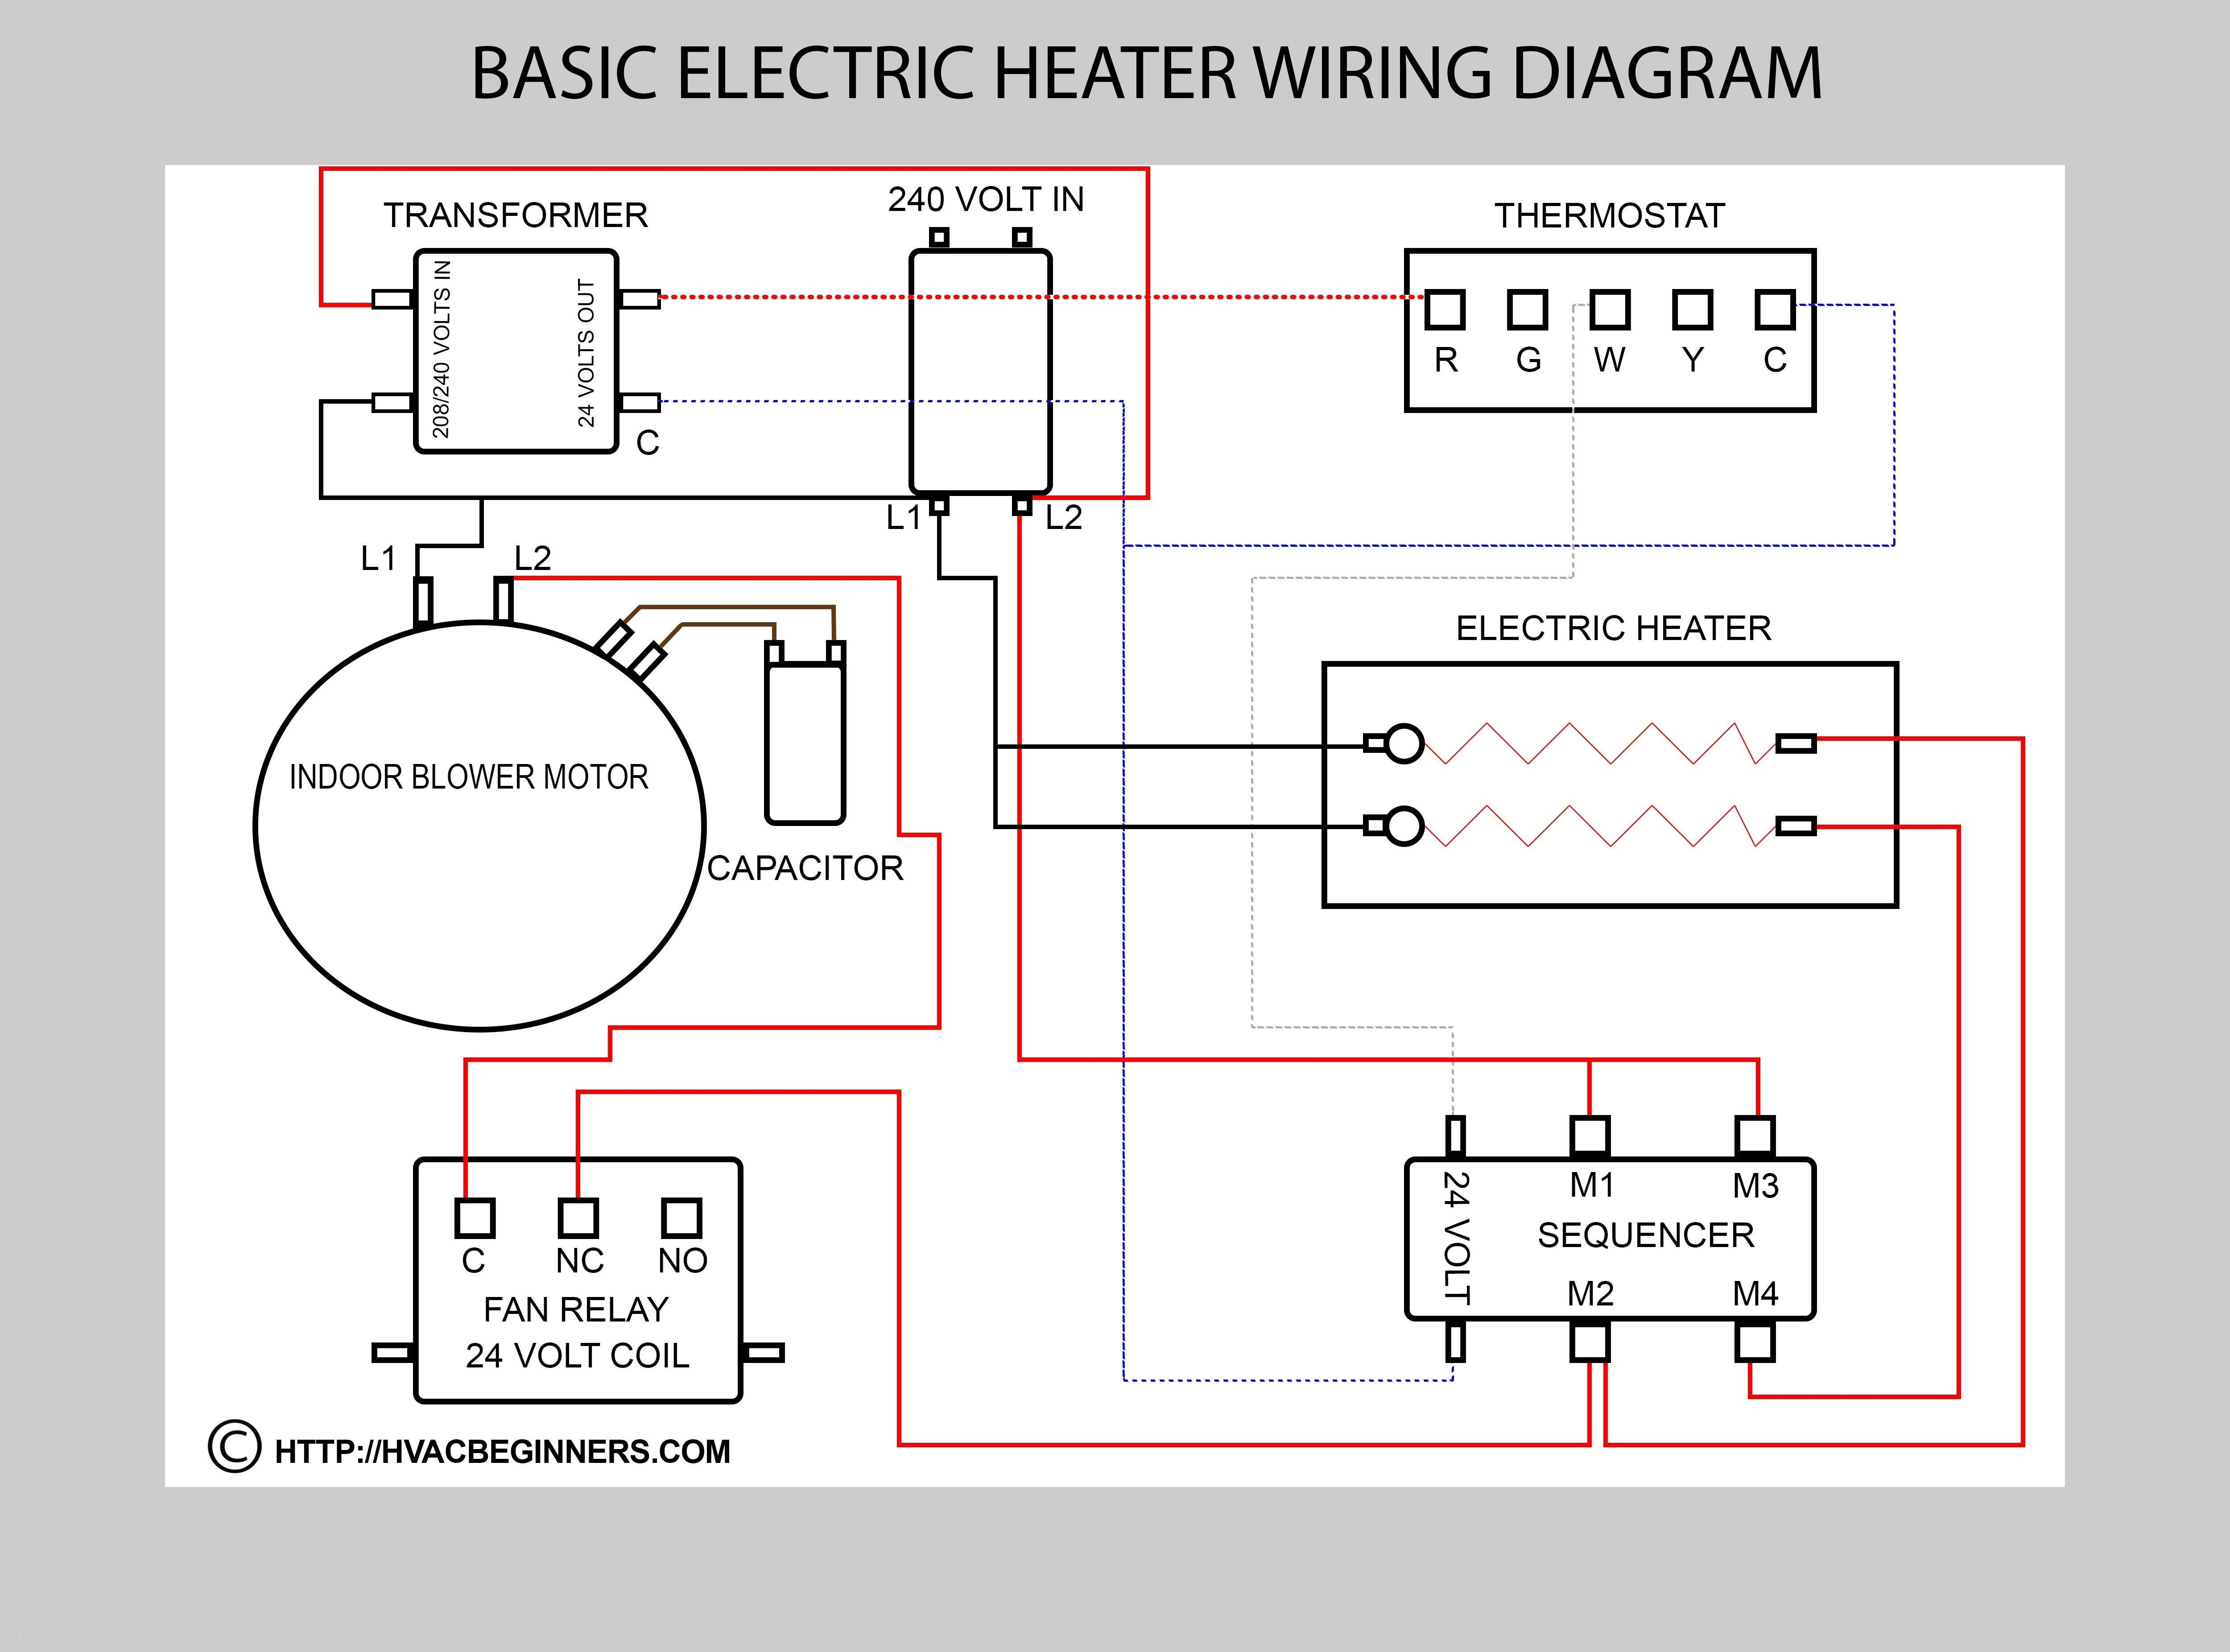 Central Air Conditioner Wiring Diagram Unique in 2020